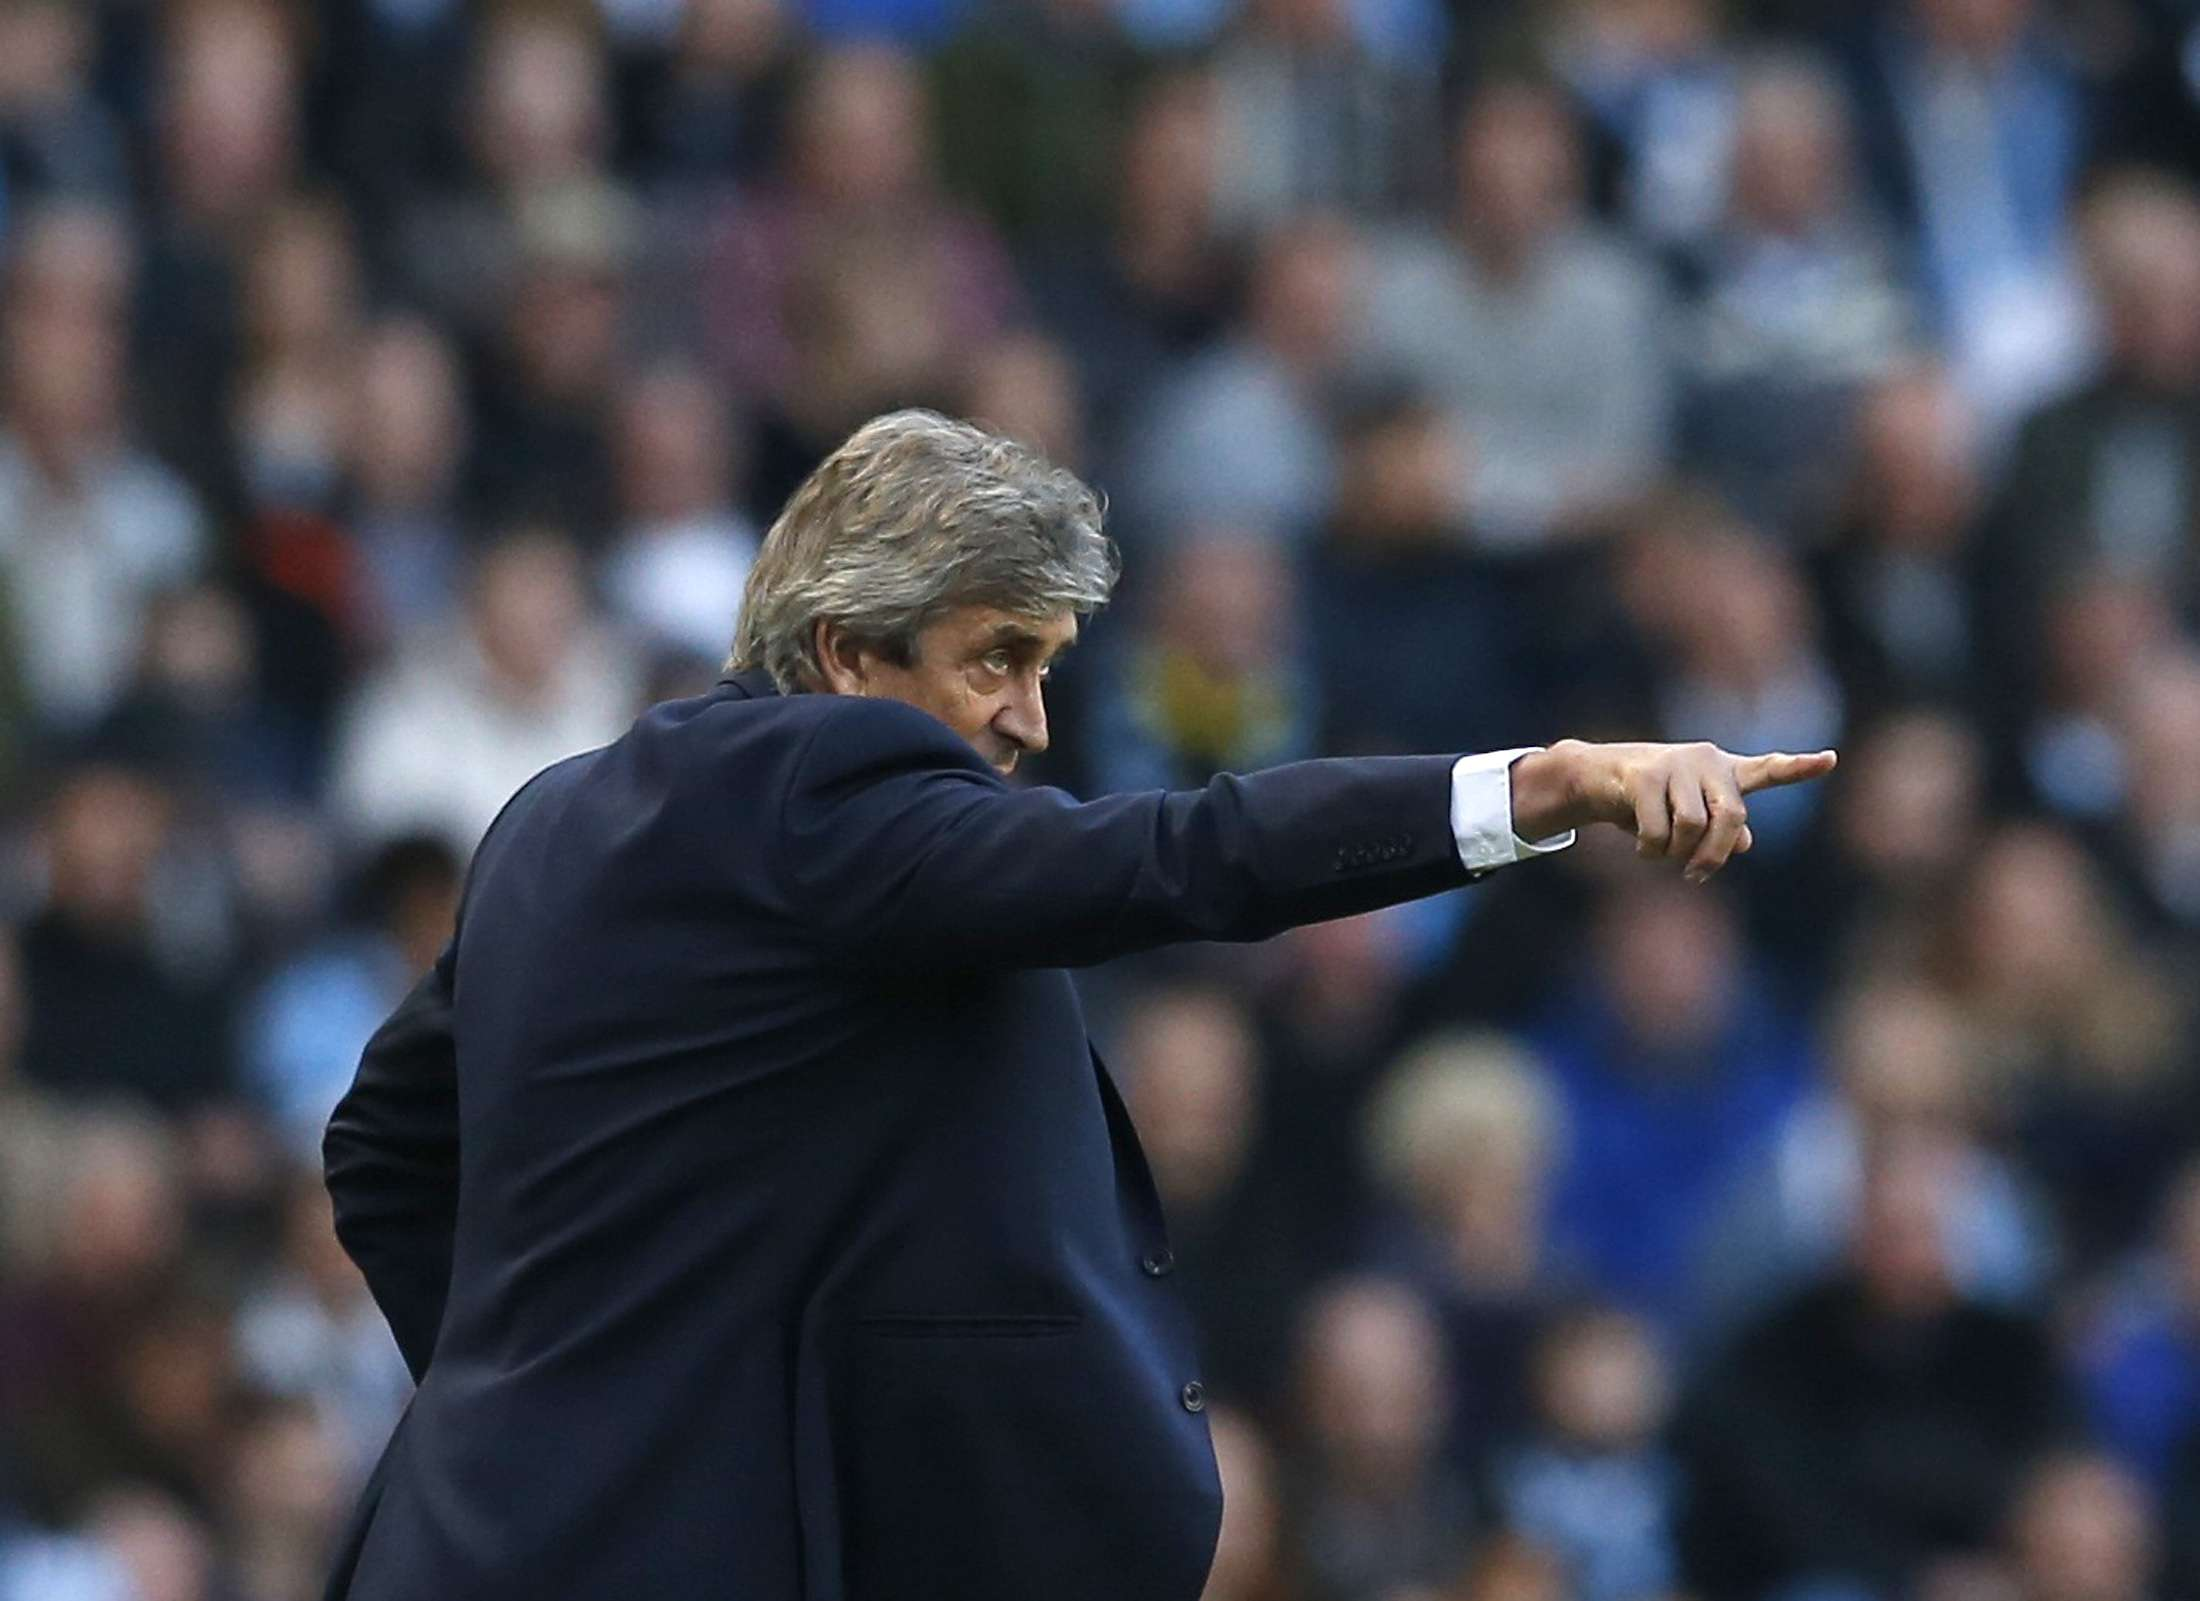 Manchester City manager Manuel Pellegrini gestures during their English Premier League soccer match against Swansea City at the Etihad stadium in Manchester, northern England November 22, 2014. REUTERS/Phil Noble (BRITAIN - Tags: SOCCER SPORT) FOR EDITORIAL USE ONLY. NOT FOR SALE FOR MARKETING OR ADVERTISING CAMPAIGNS. EDITORIAL USE ONLY. NO USE WITH UNAUTHORIZED AUDIO, VIDEO, DATA, FIXTURE LISTS, CLUB/LEAGUE LOGOS OR 'LIVE' SERVICES. ONLINE IN-MATCH USE LIMITED TO 45 IMAGES, NO VIDEO EMULATION. NO USE IN BETTING, GAMES OR SINGLE CLUB/LEAGUE/PLAYER PUBLICATIONS. Foto: PHIL NOBLE/REUTERS